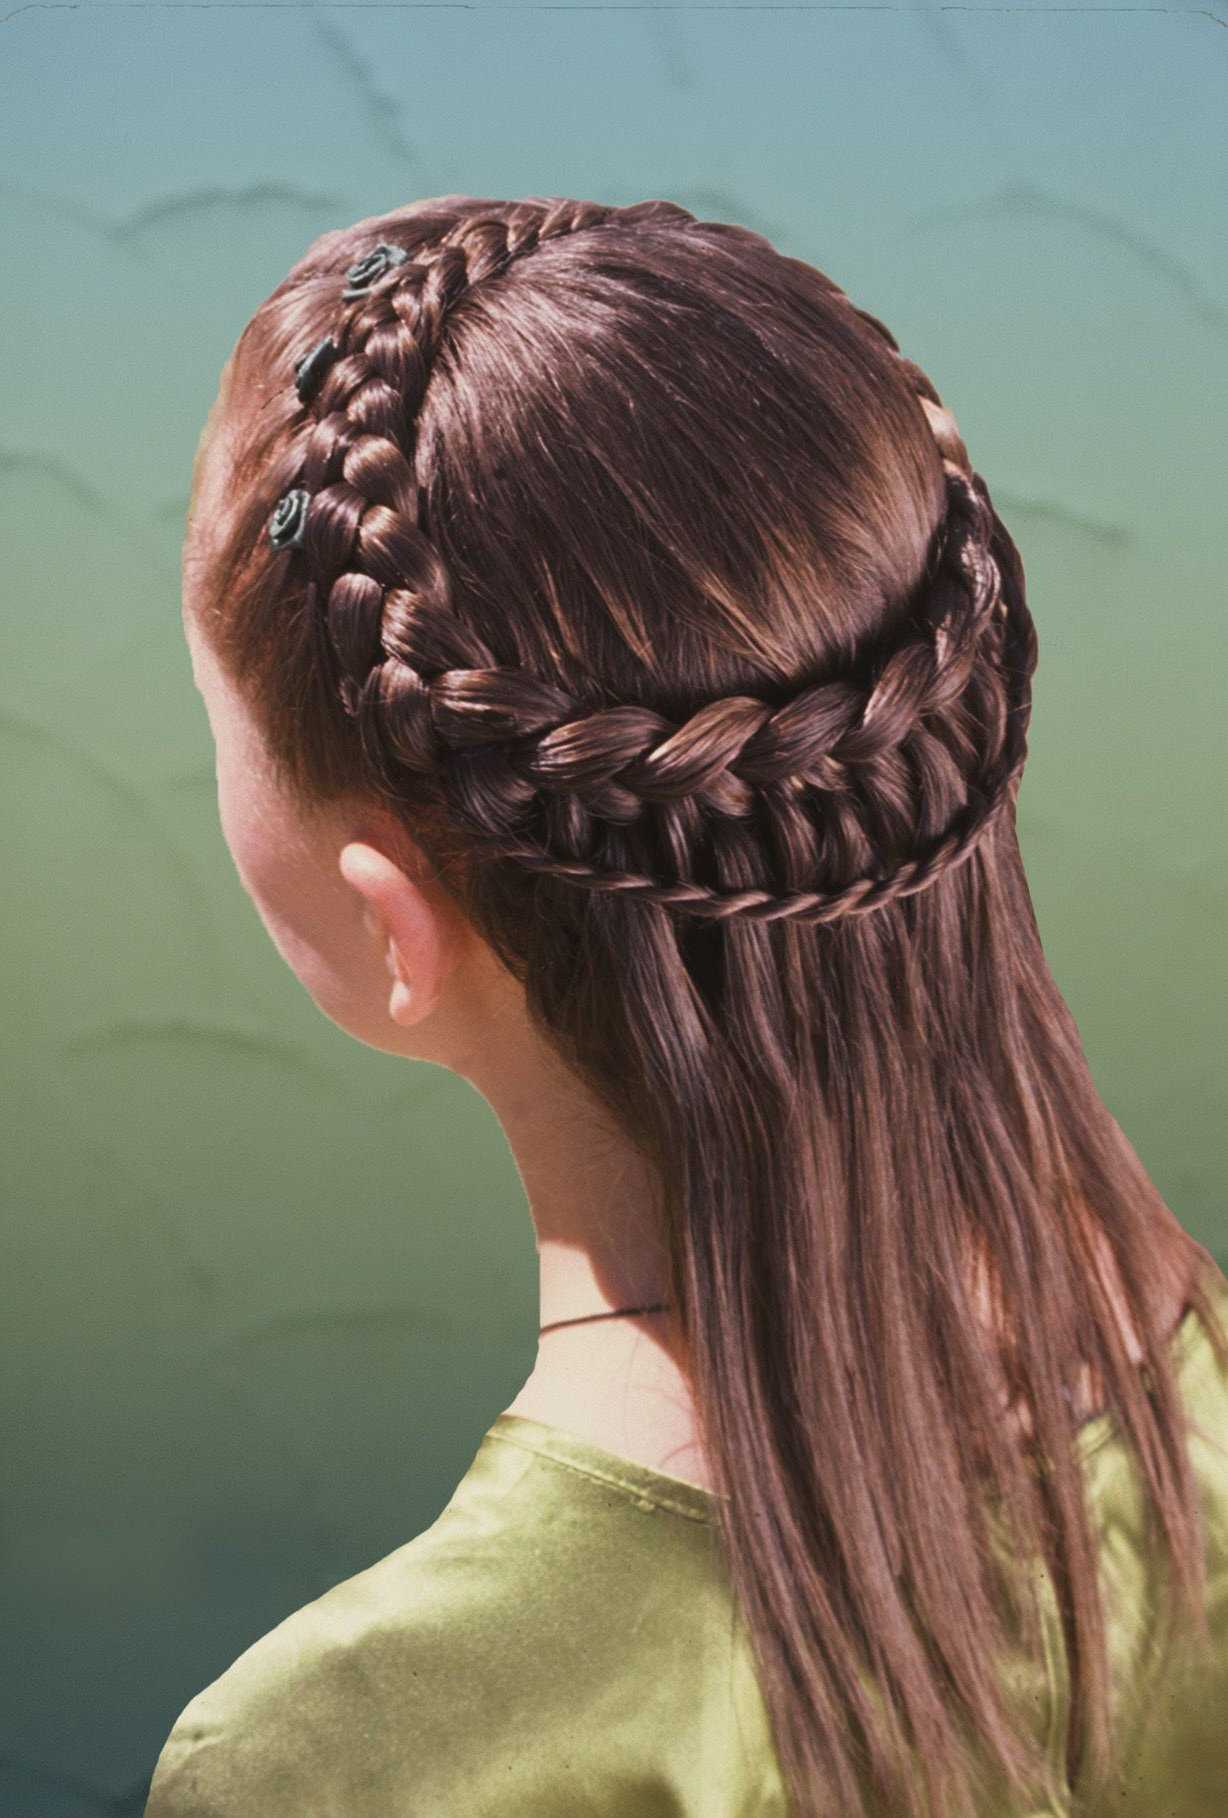 Pin About Braided Hairstyles On Hair (View 17 of 20)